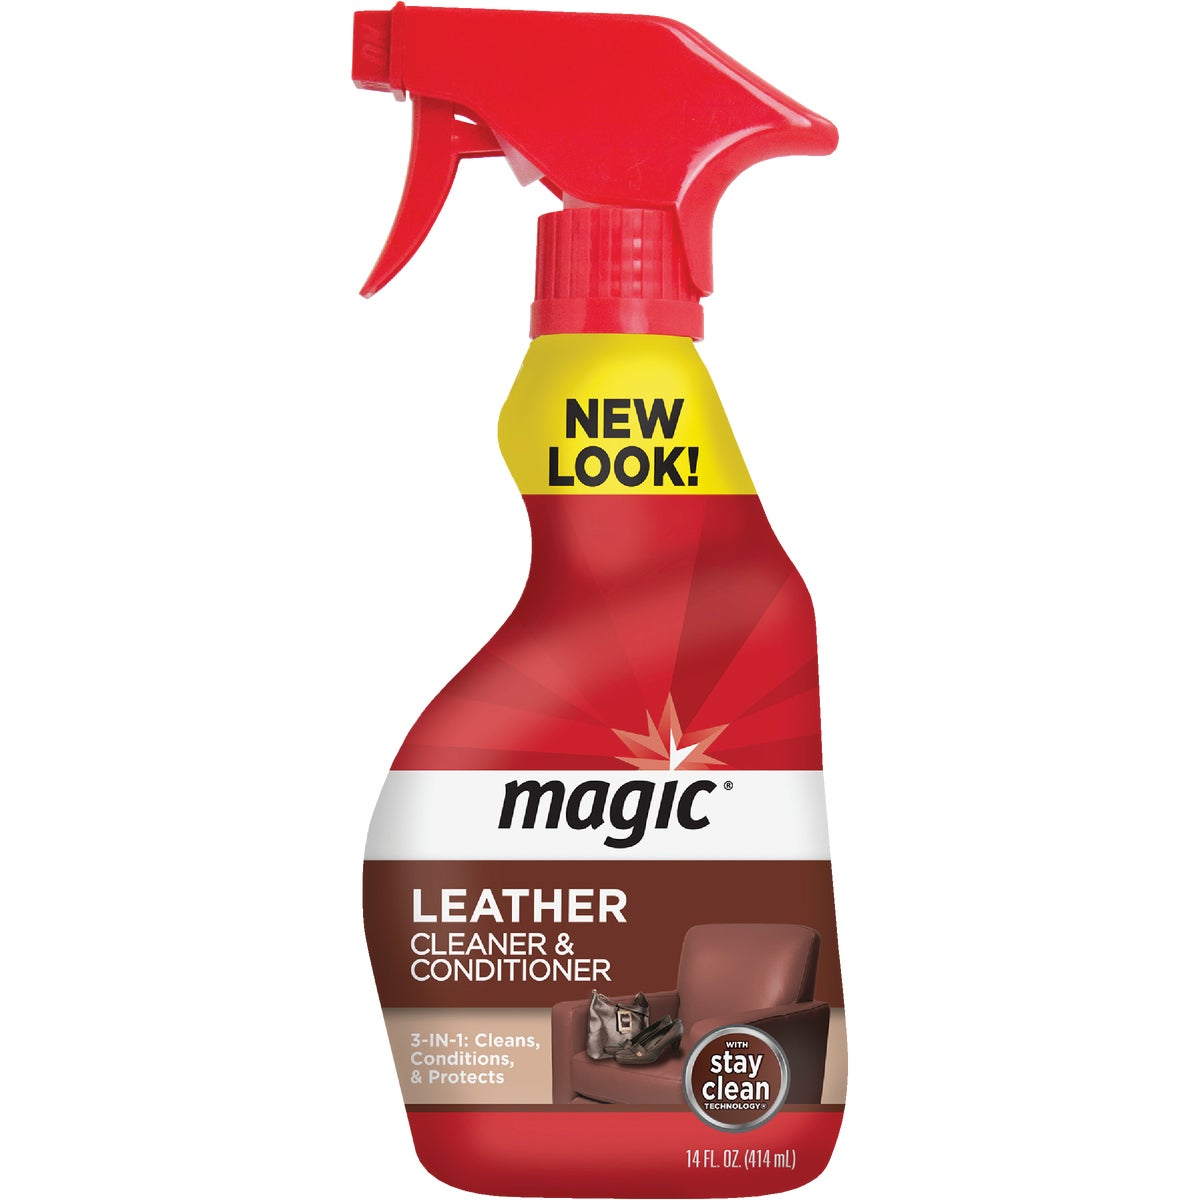 14OZ LEATHER CLEANER - 3068 by Weiman Products Llc